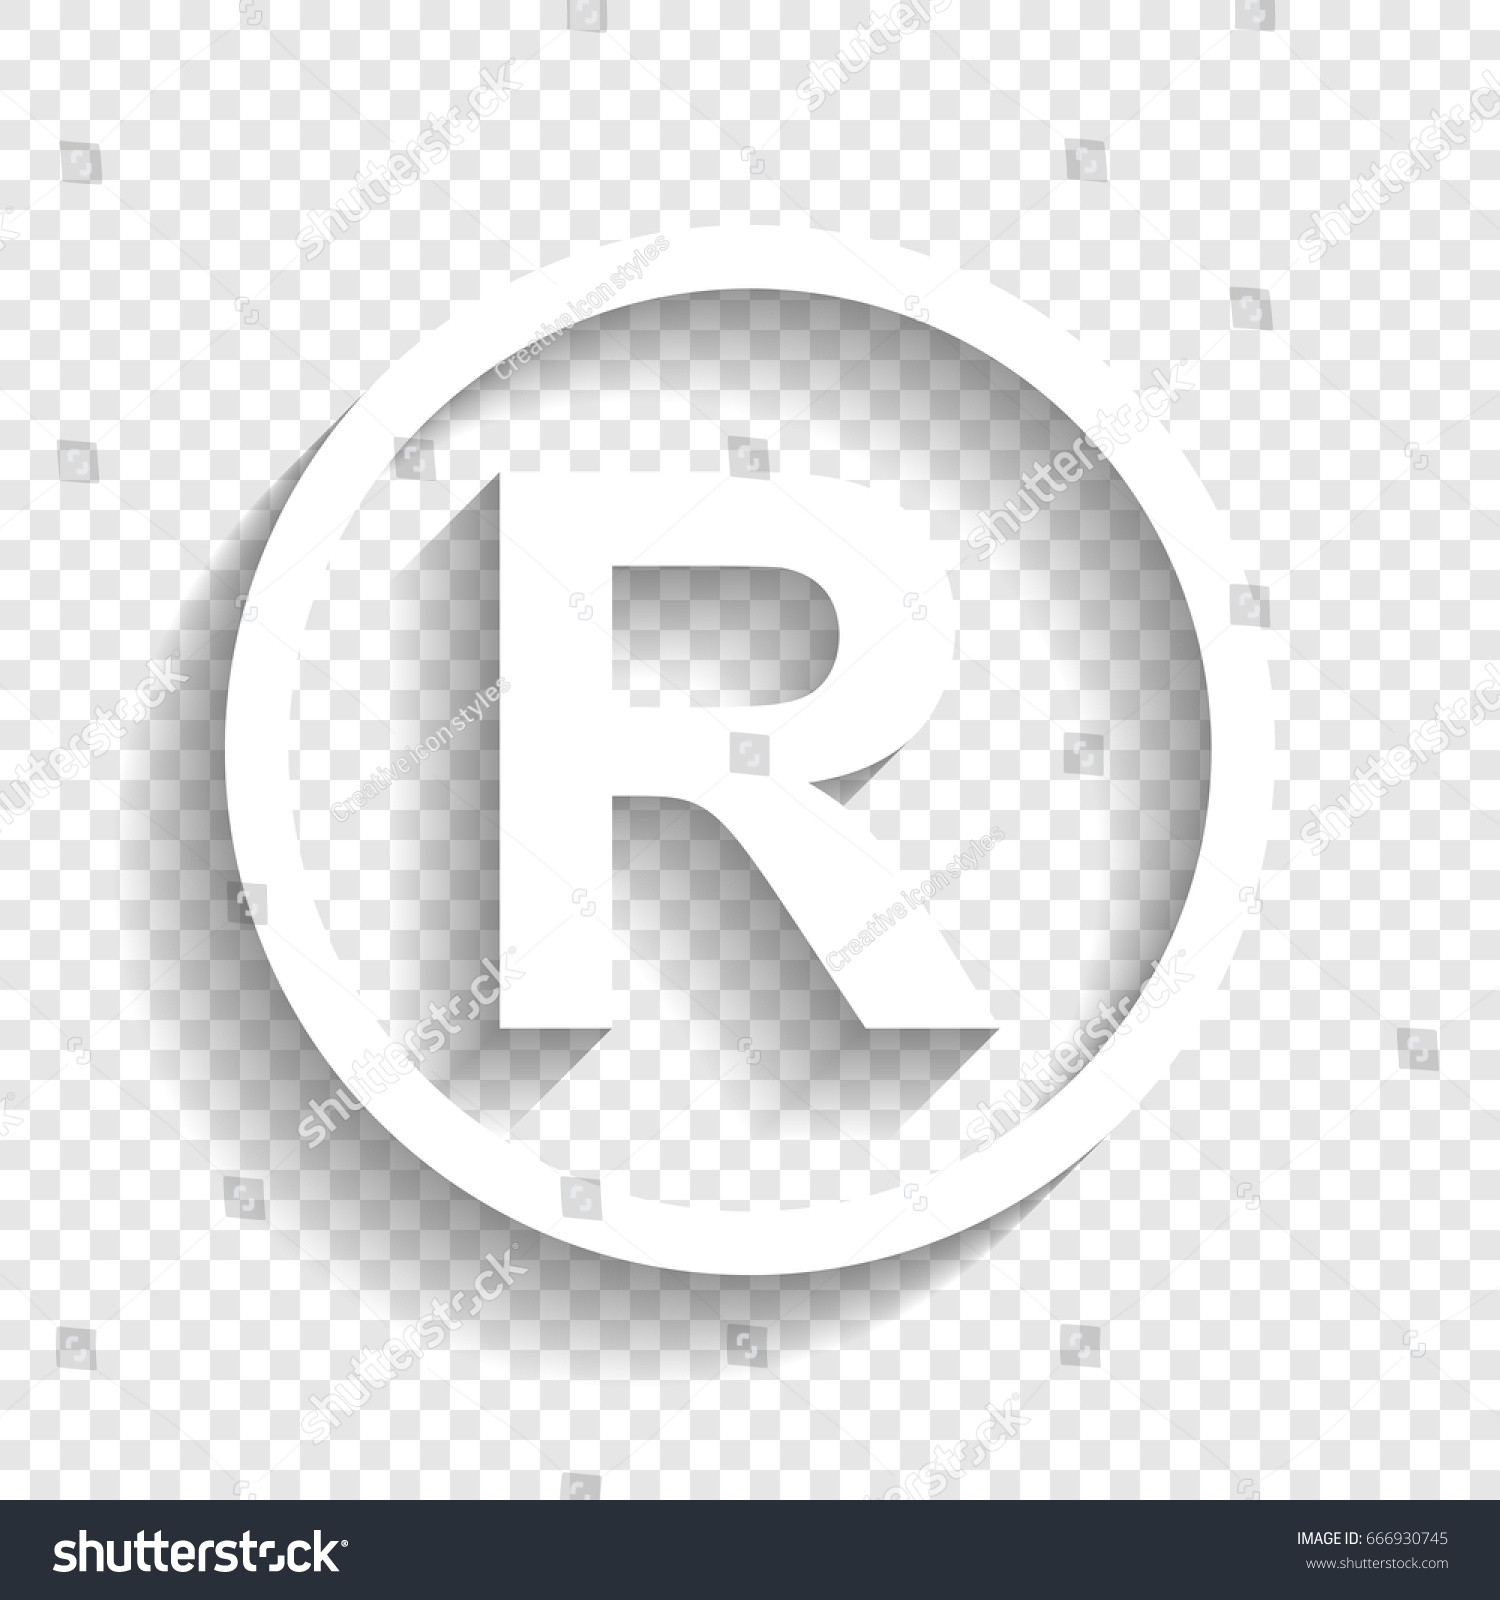 Registered trademark sign vector white icon stock vector 666930745 registered trademark sign vector white icon with soft shadow on transparent background buycottarizona